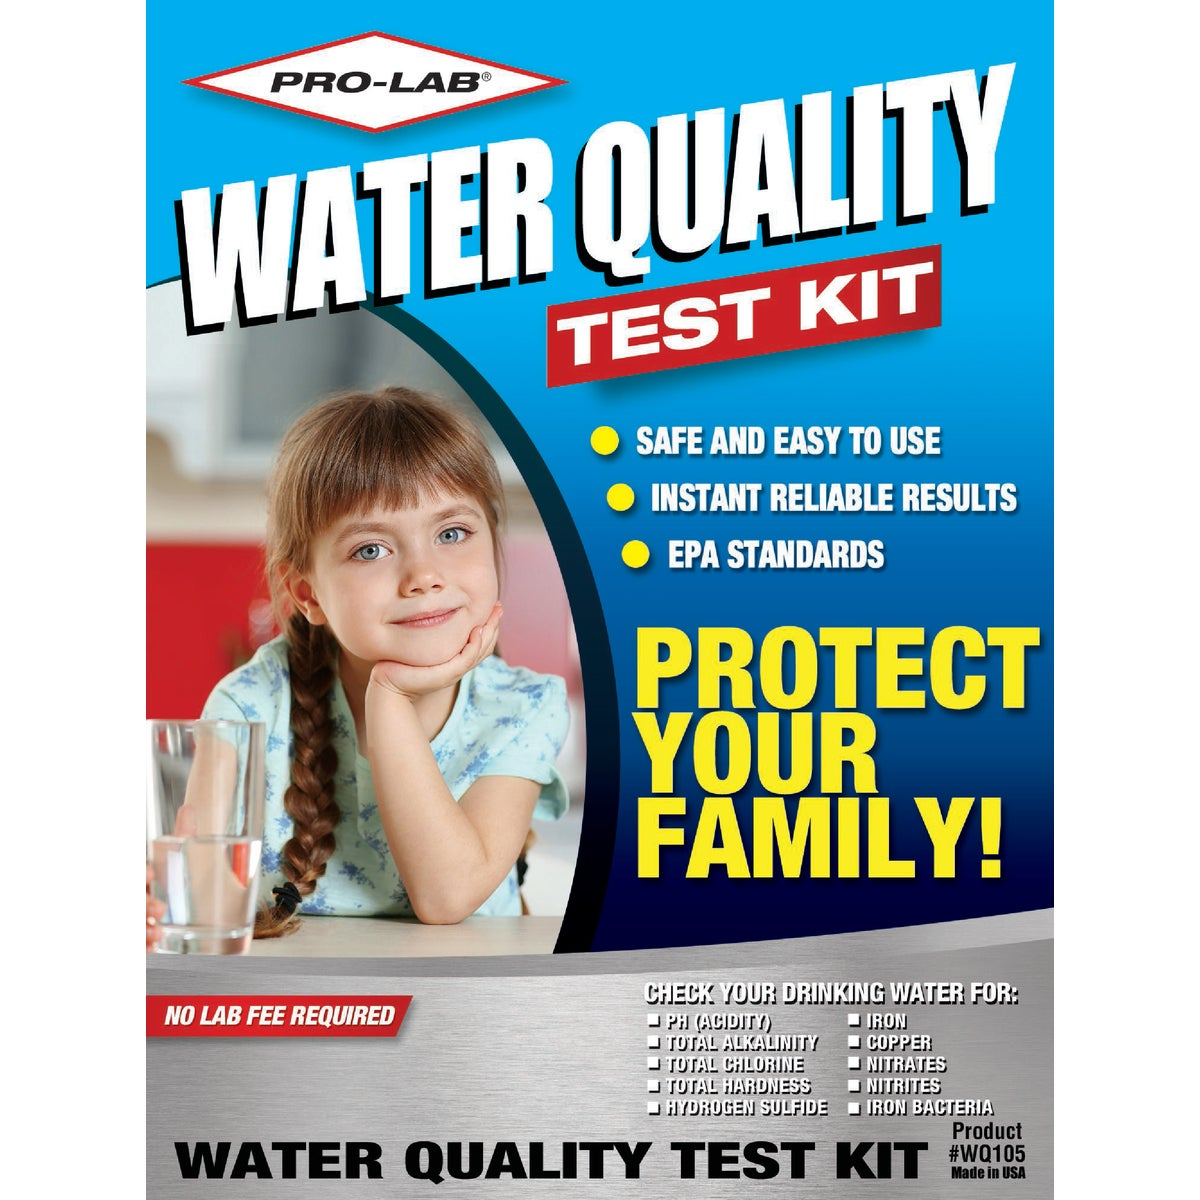 WATER QUALITY TEST KIT - WQ105 by Pro Lab Inc